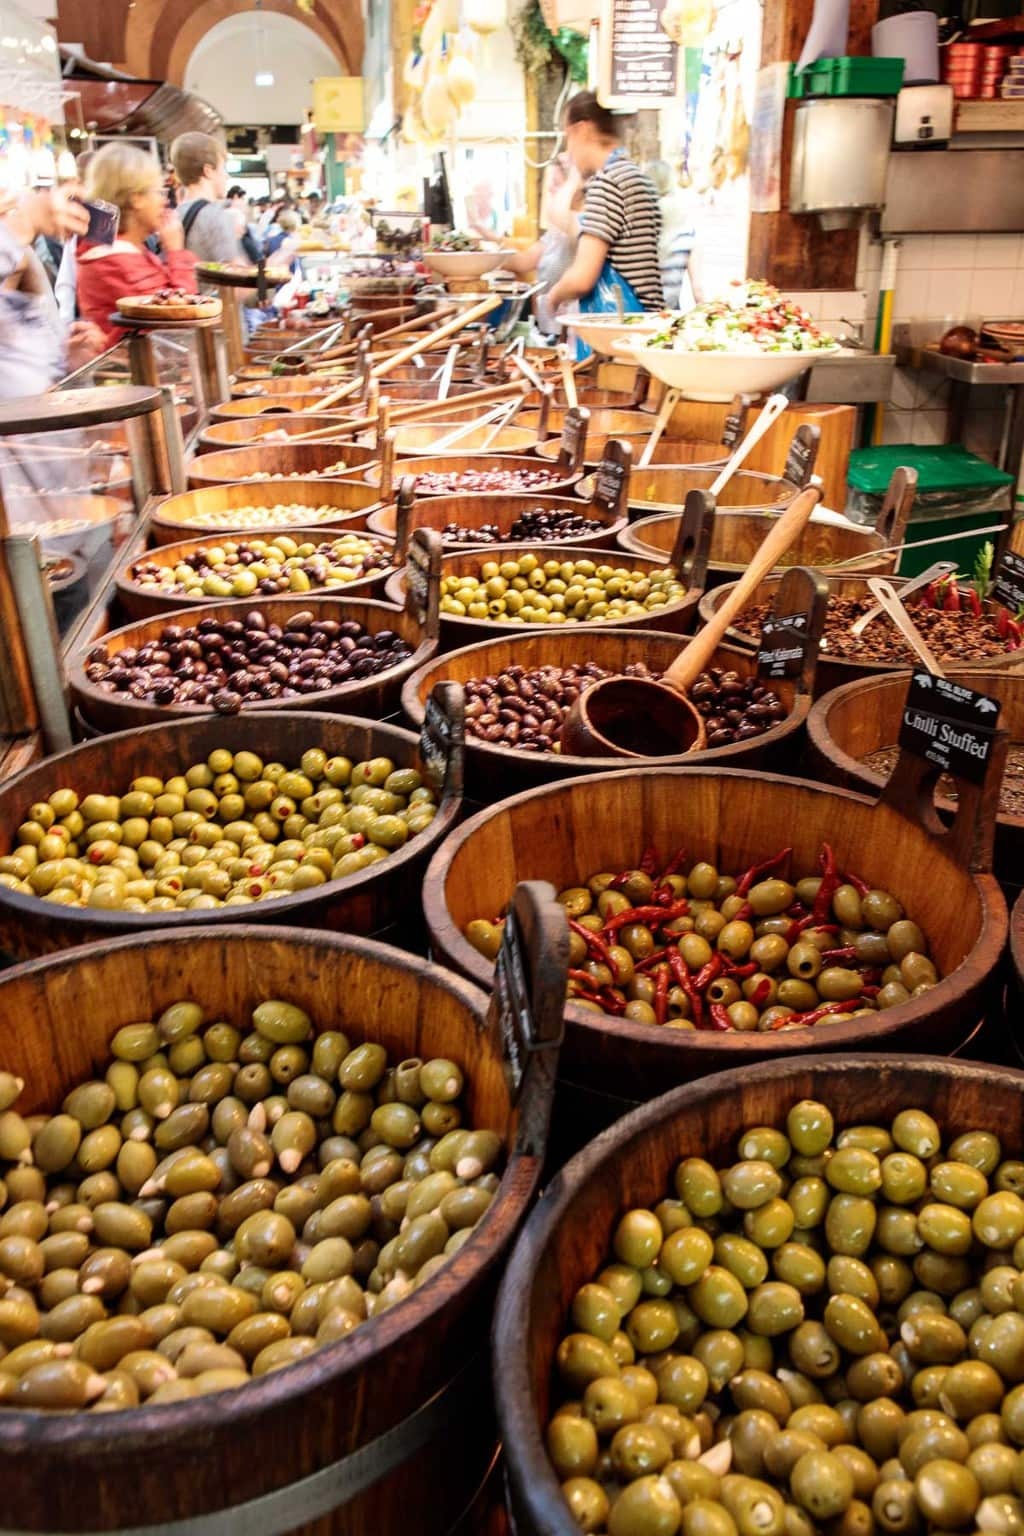 Photo of vendors displaying their olives at the English Market in Cork.